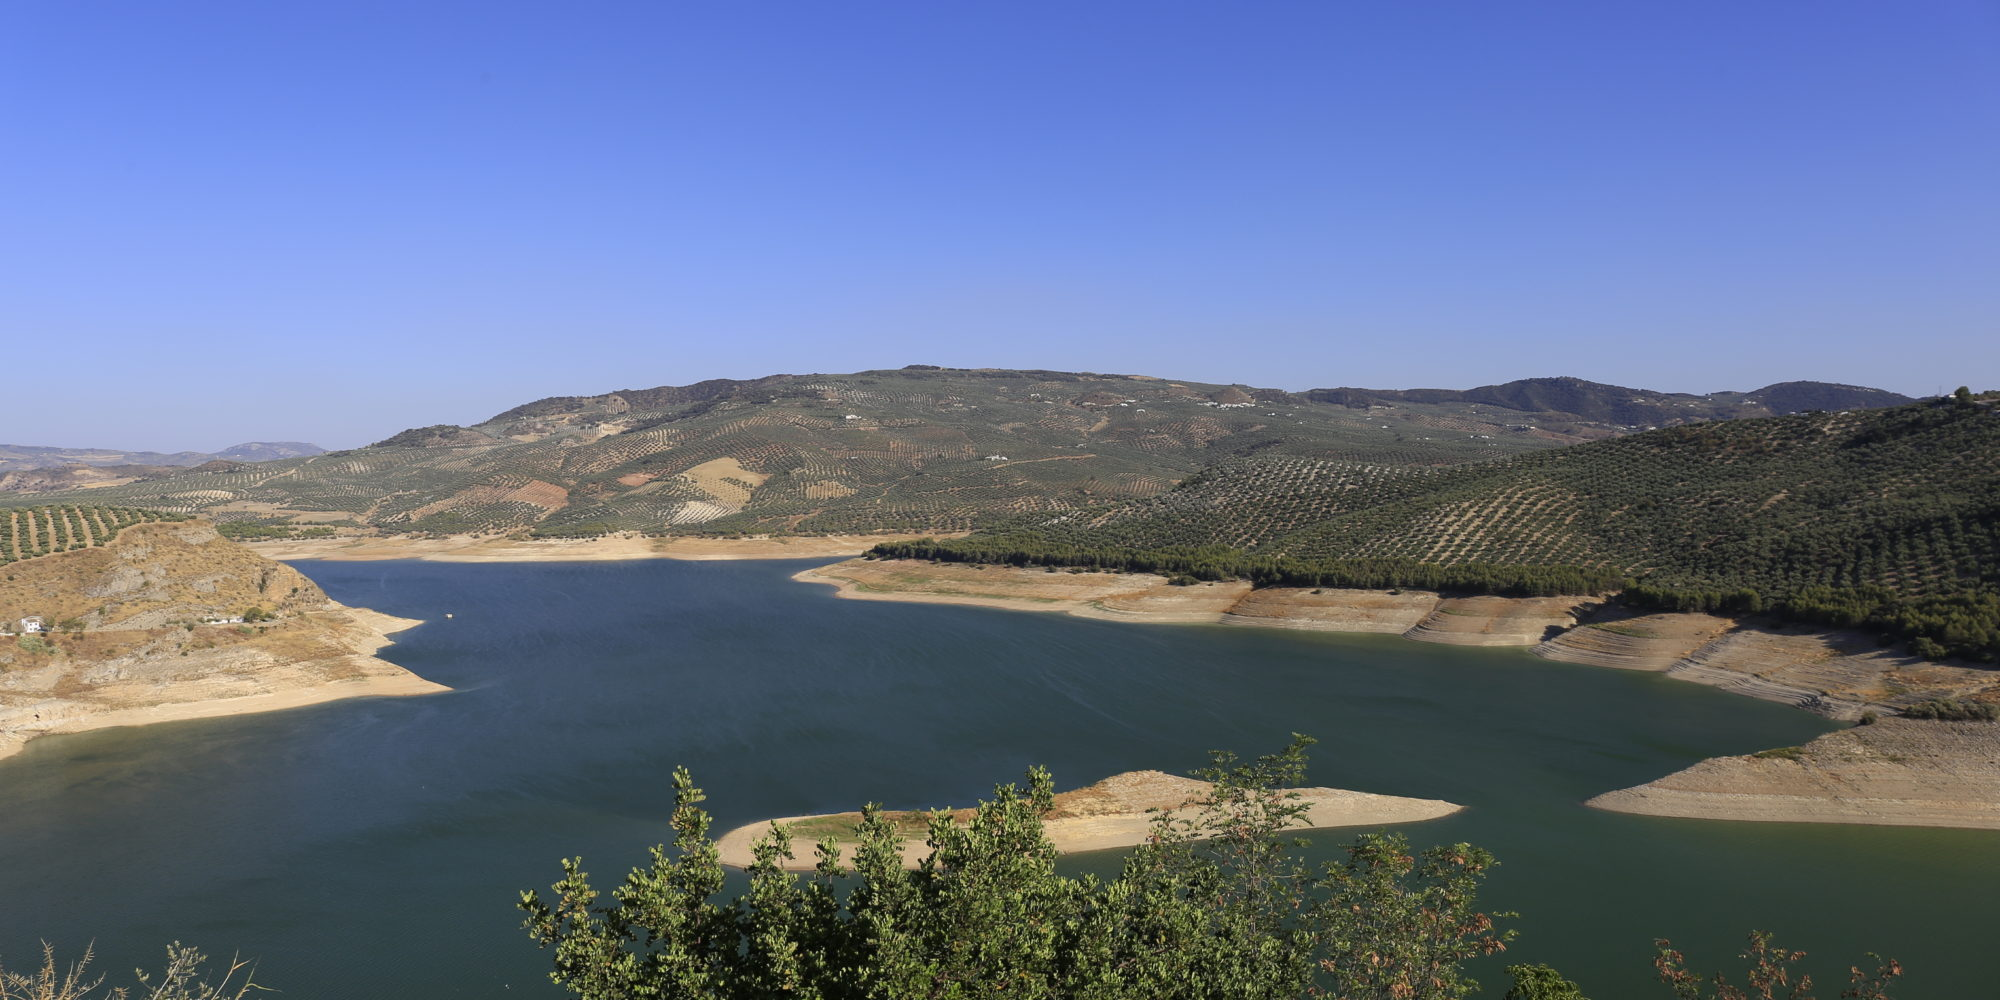 Inzajar is en-route trail tour locations that we visit during our adventure off-road motorcycle tour in Malaga, Spain.